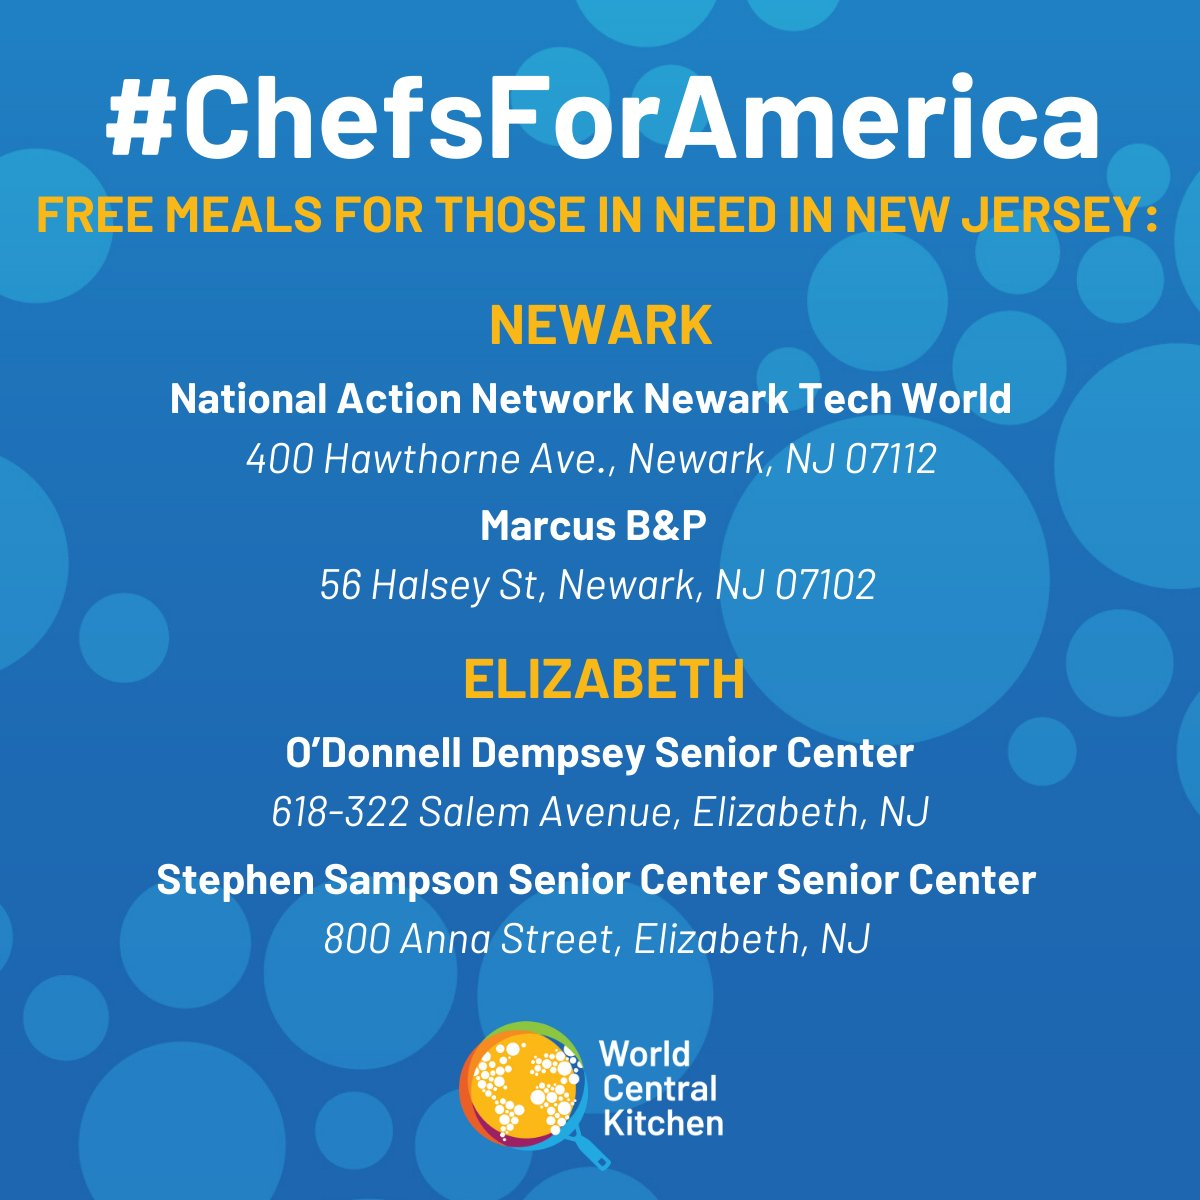 In partnership with @RESCUEorg, WCK is opening 2 new meal locations in Elizabeth, New Jersey! 📣 Residents can come by the locations listed here in The Bronx, Brooklyn, Queens, Harlem, Newark, and Elizabeth for free grab-and-go meals. #ChefsForAmerica